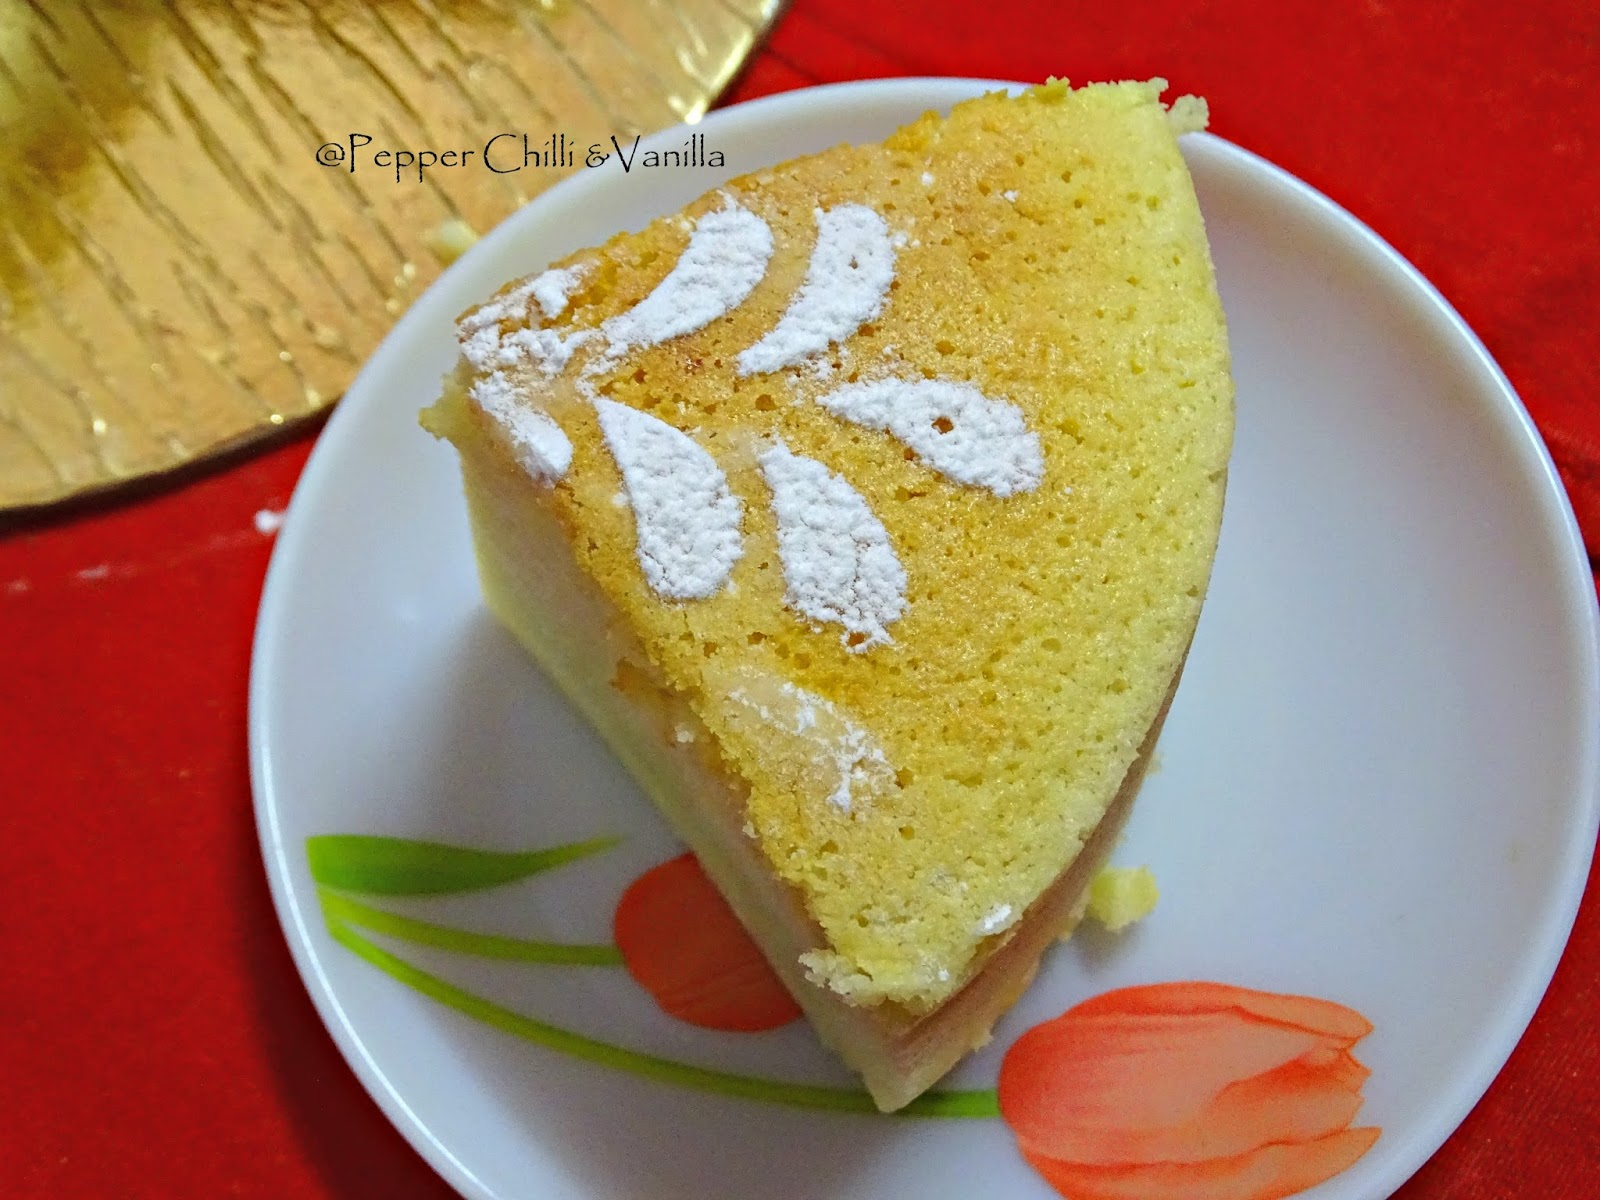 japanese cottonsoft cheesecake recipe.